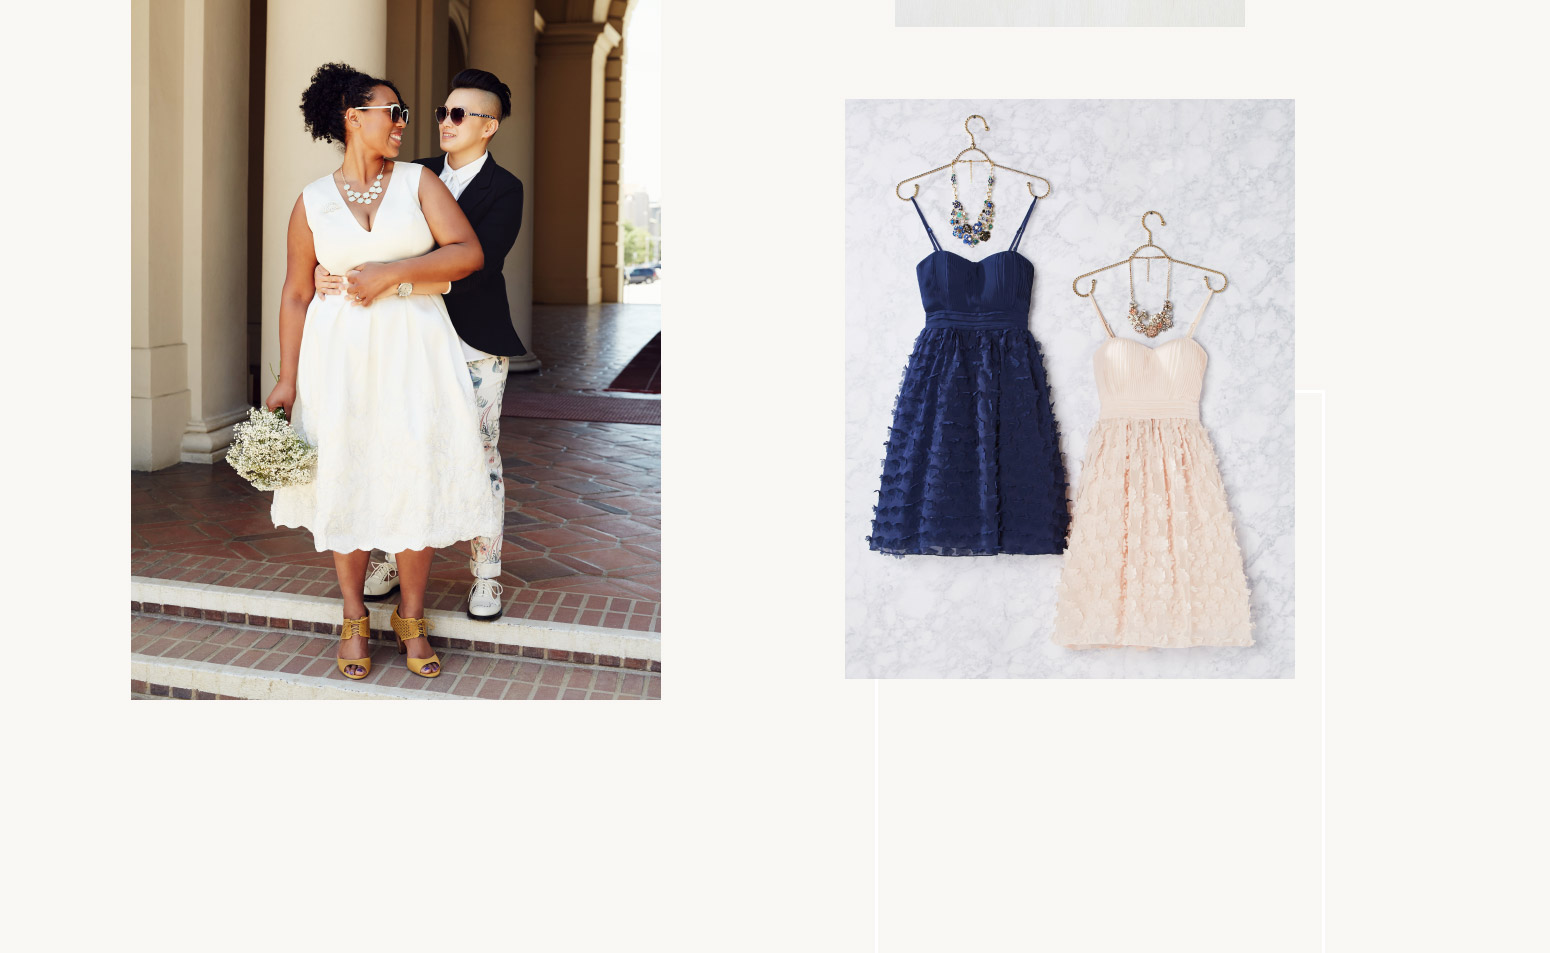 Newlyweds in love & and blue & pink wedding-party dresses